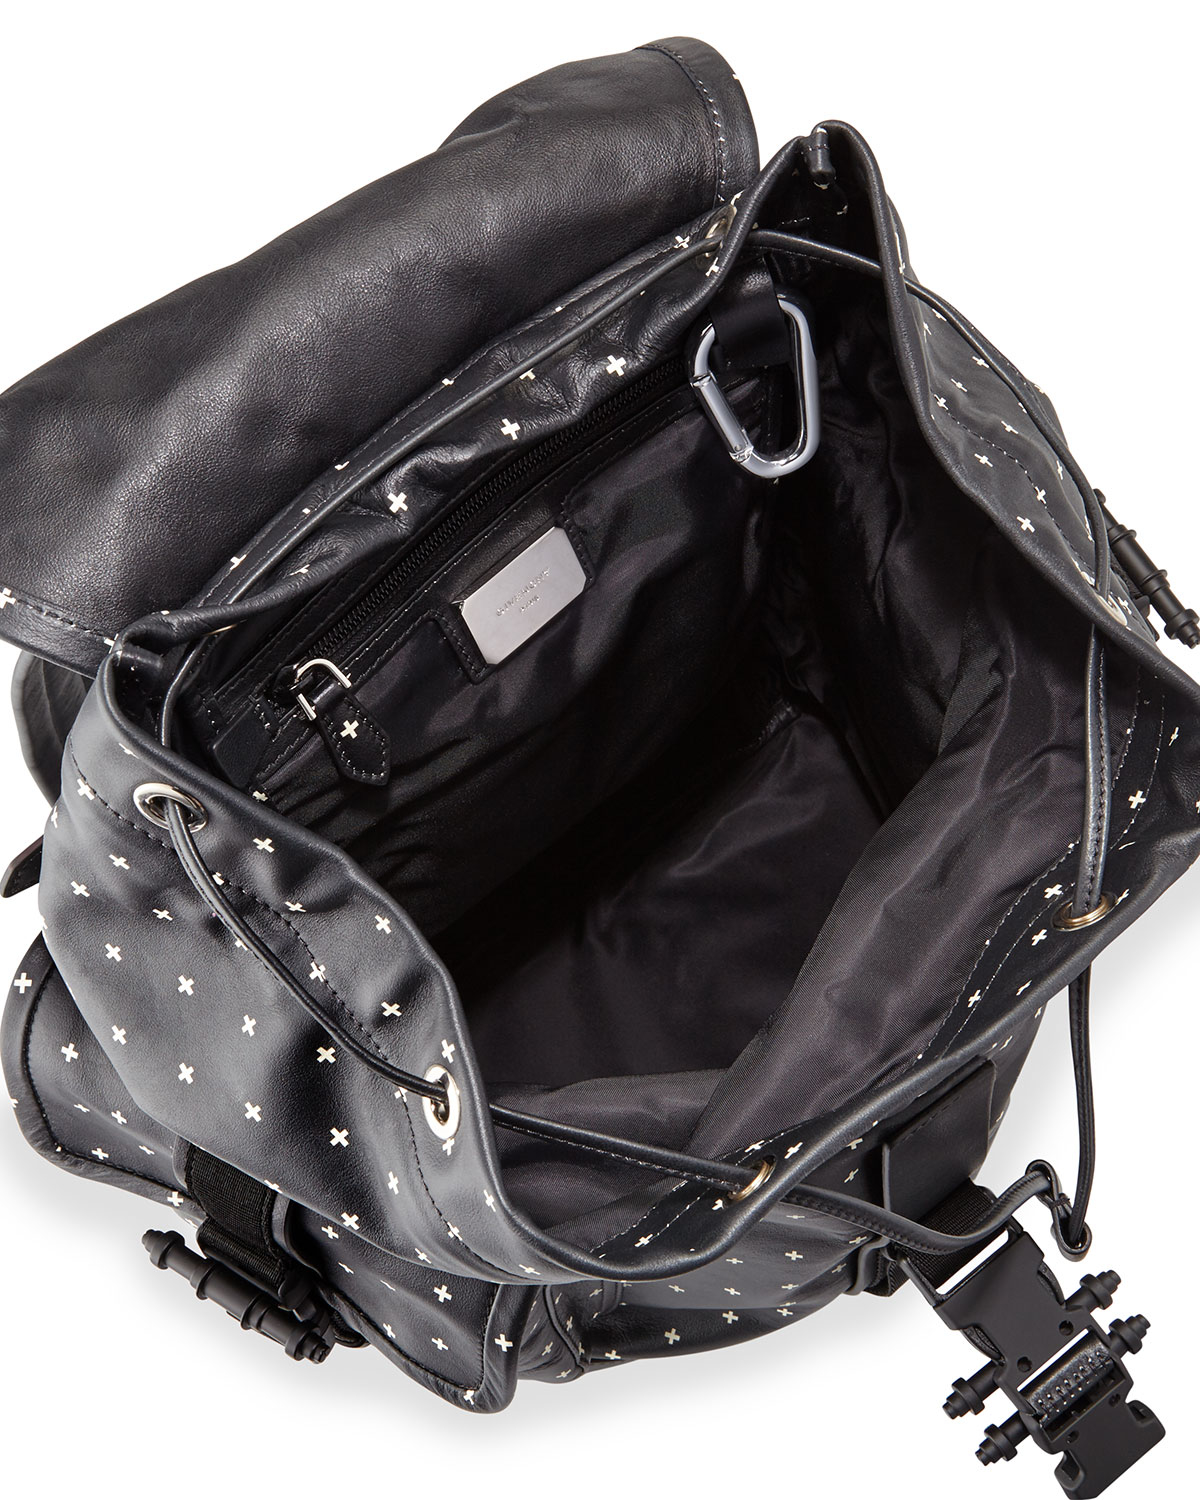 2a0f256fafad Lyst - Givenchy Men s Cross-print Leather Backpack in Black for Men